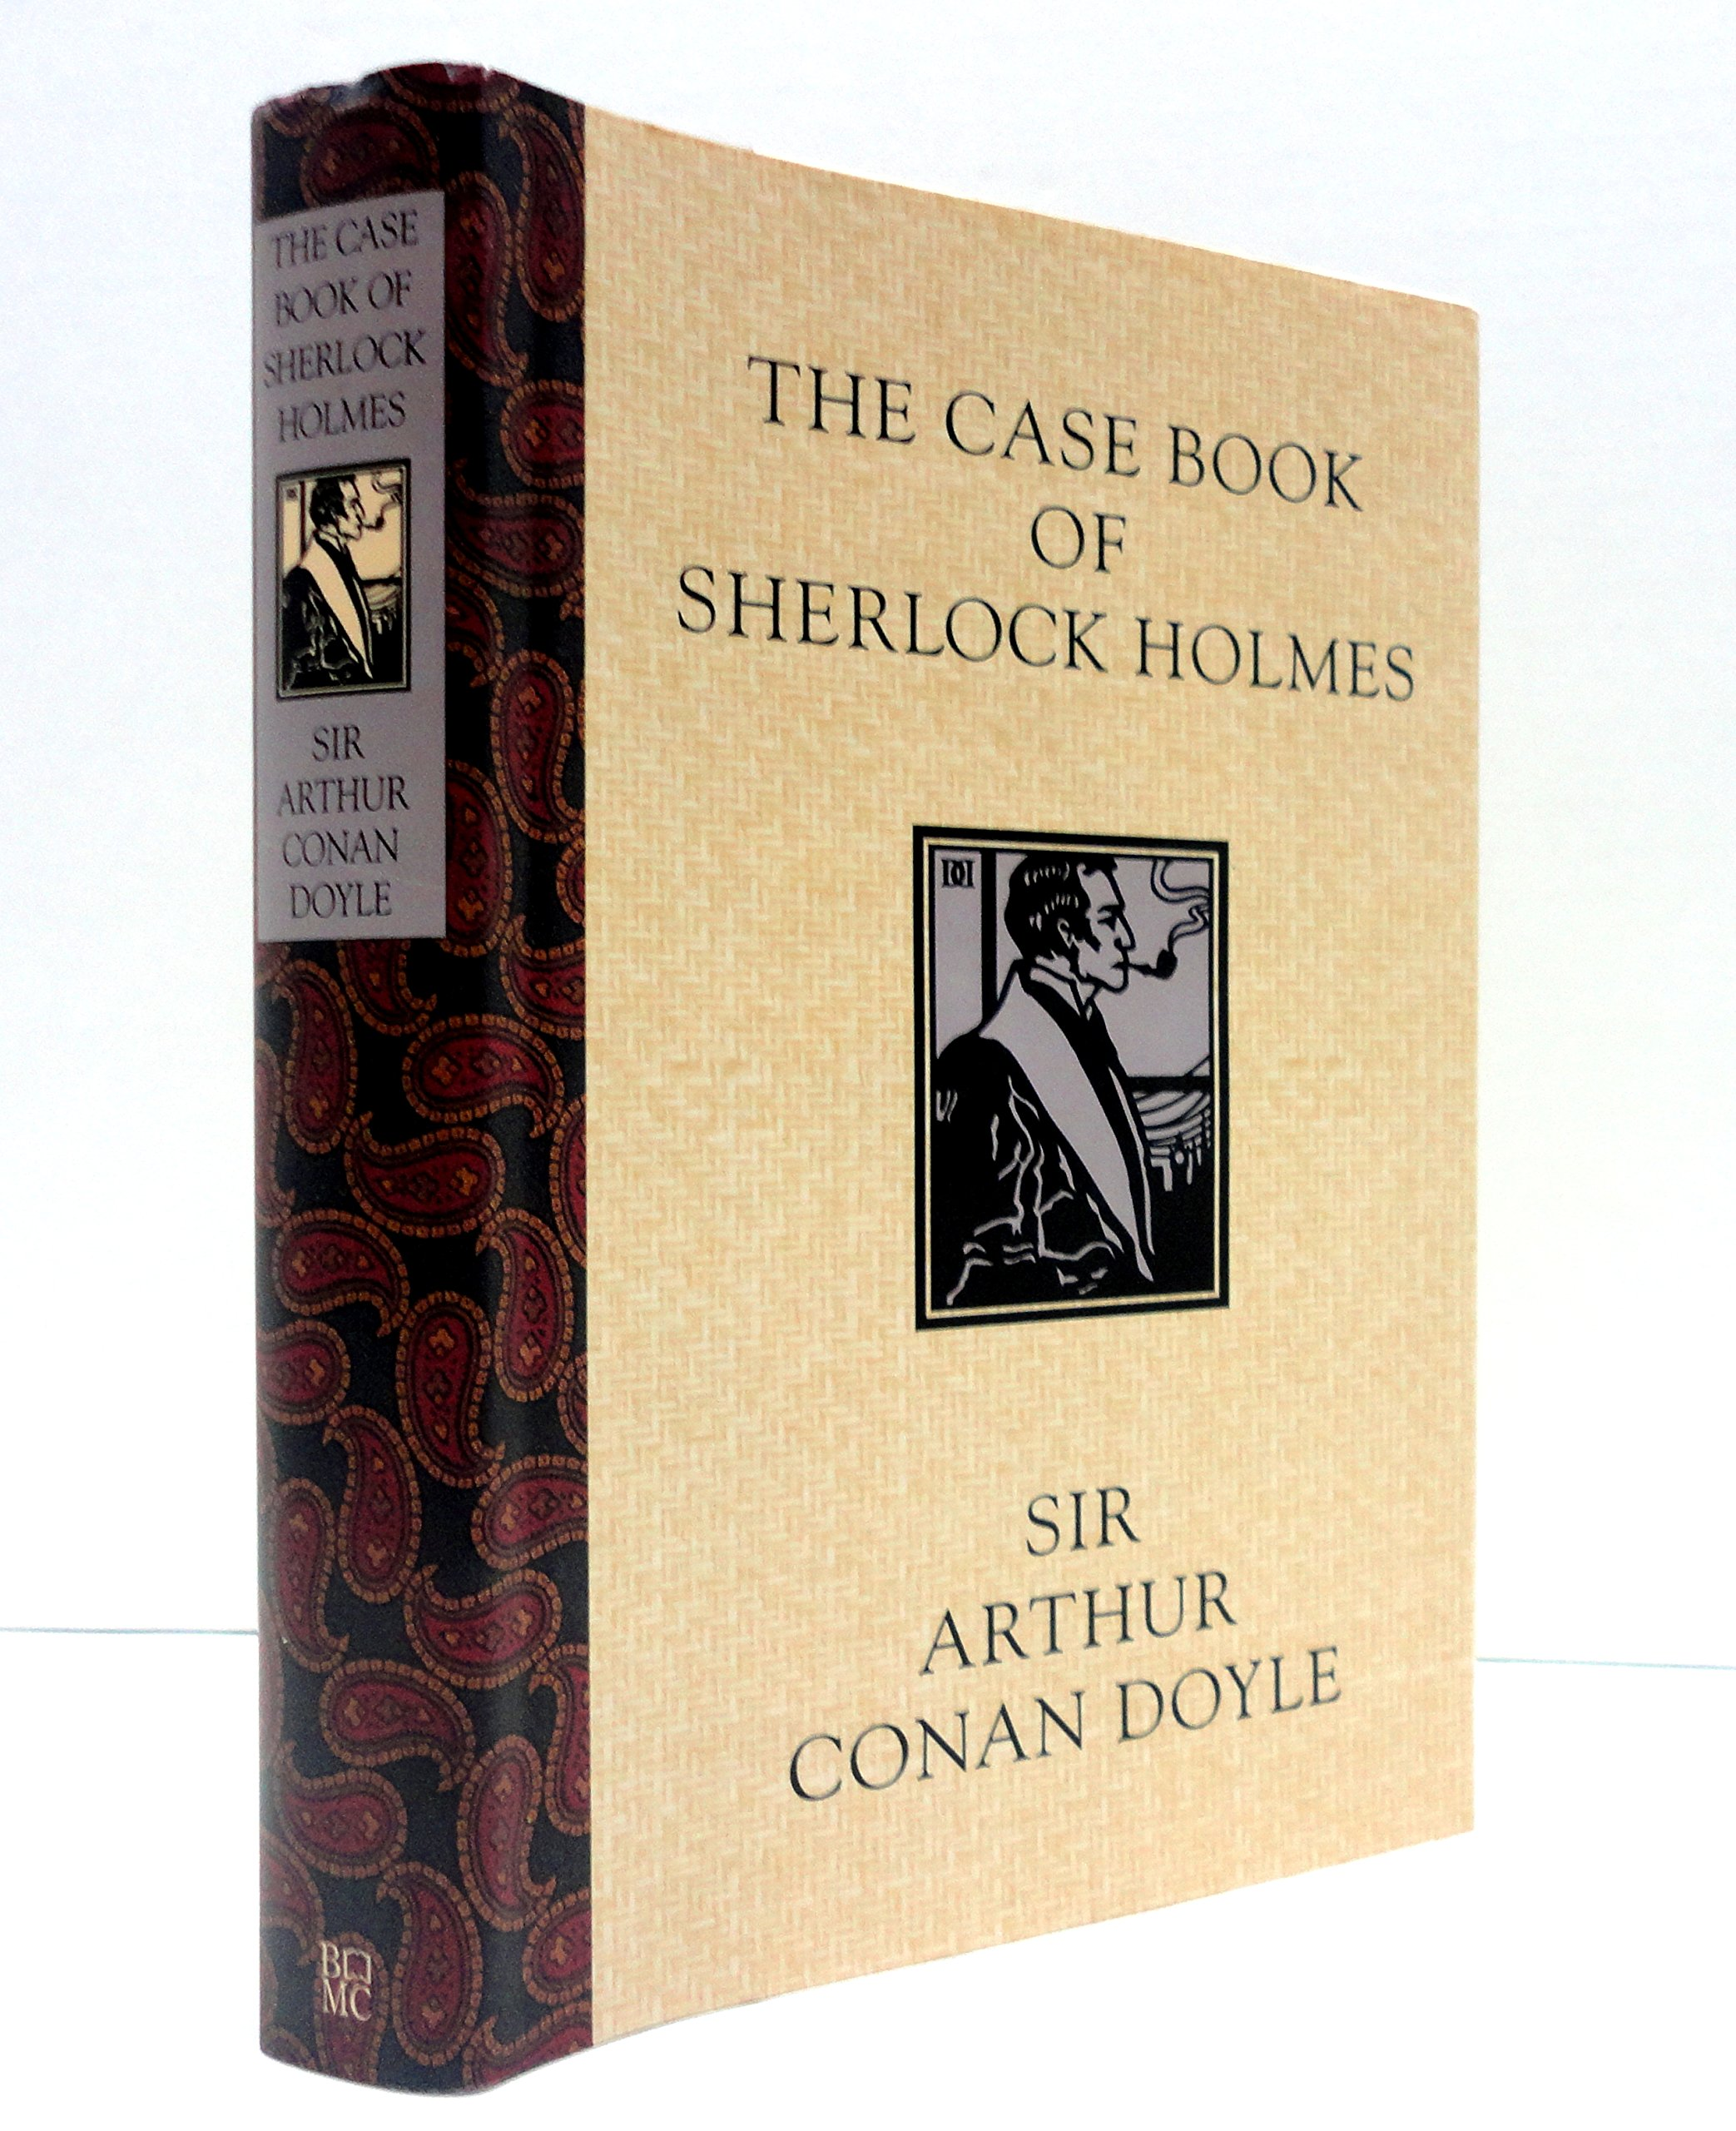 The Case Book of Sherlock Holmes, Doyle, Sir Arthur Conan Doyle